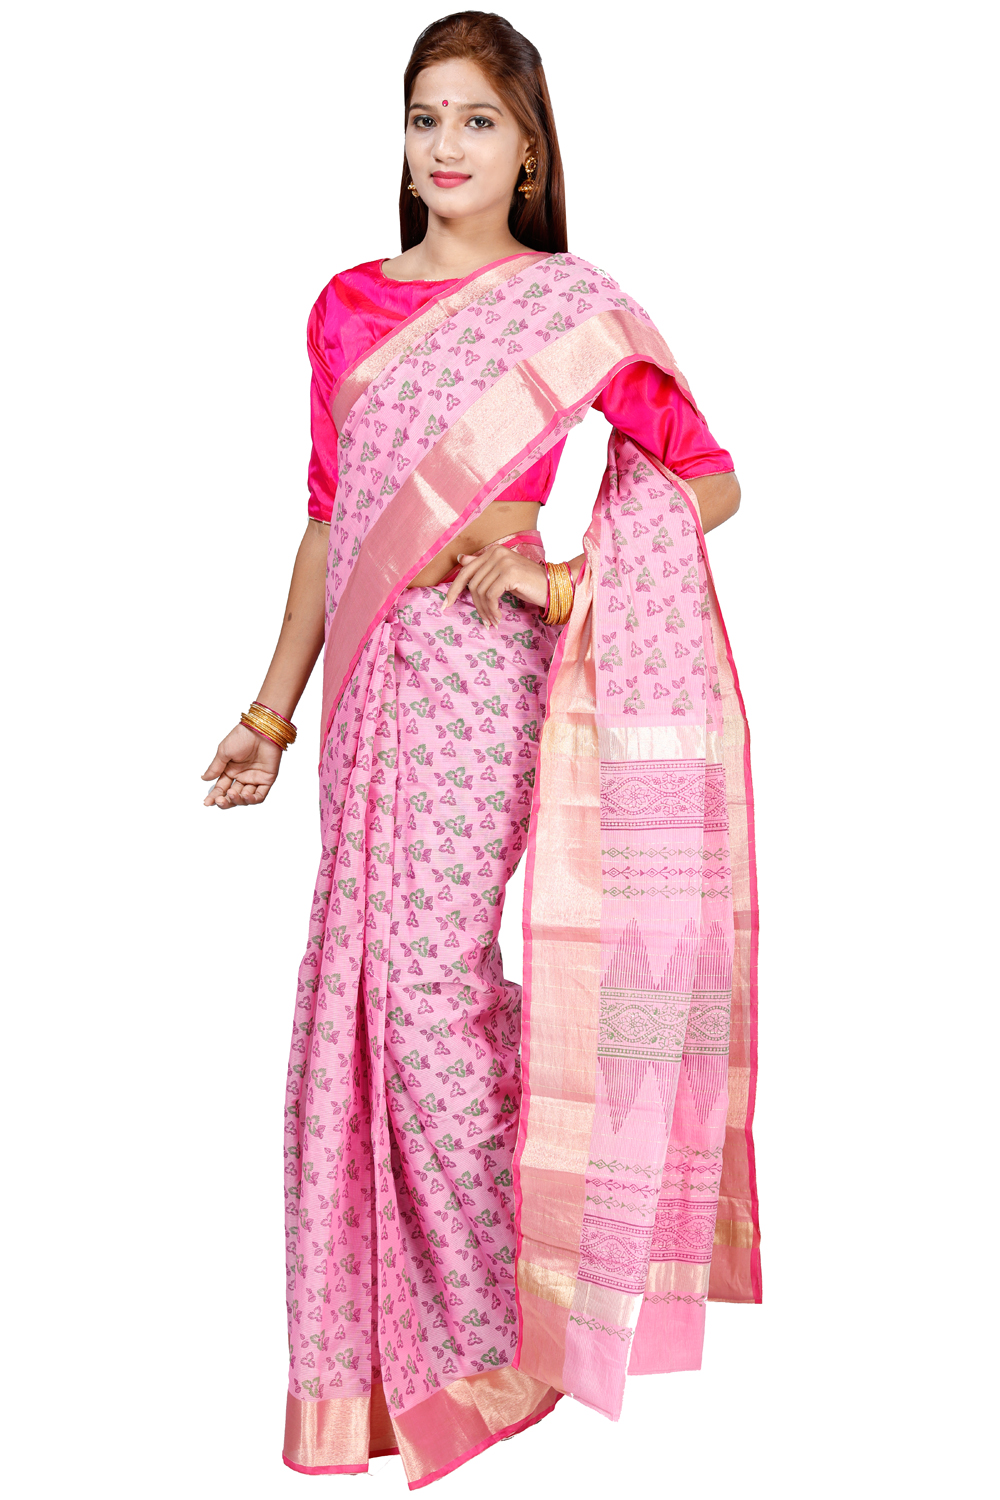 30b6a05747 lotus pink color sico saree kalanjali